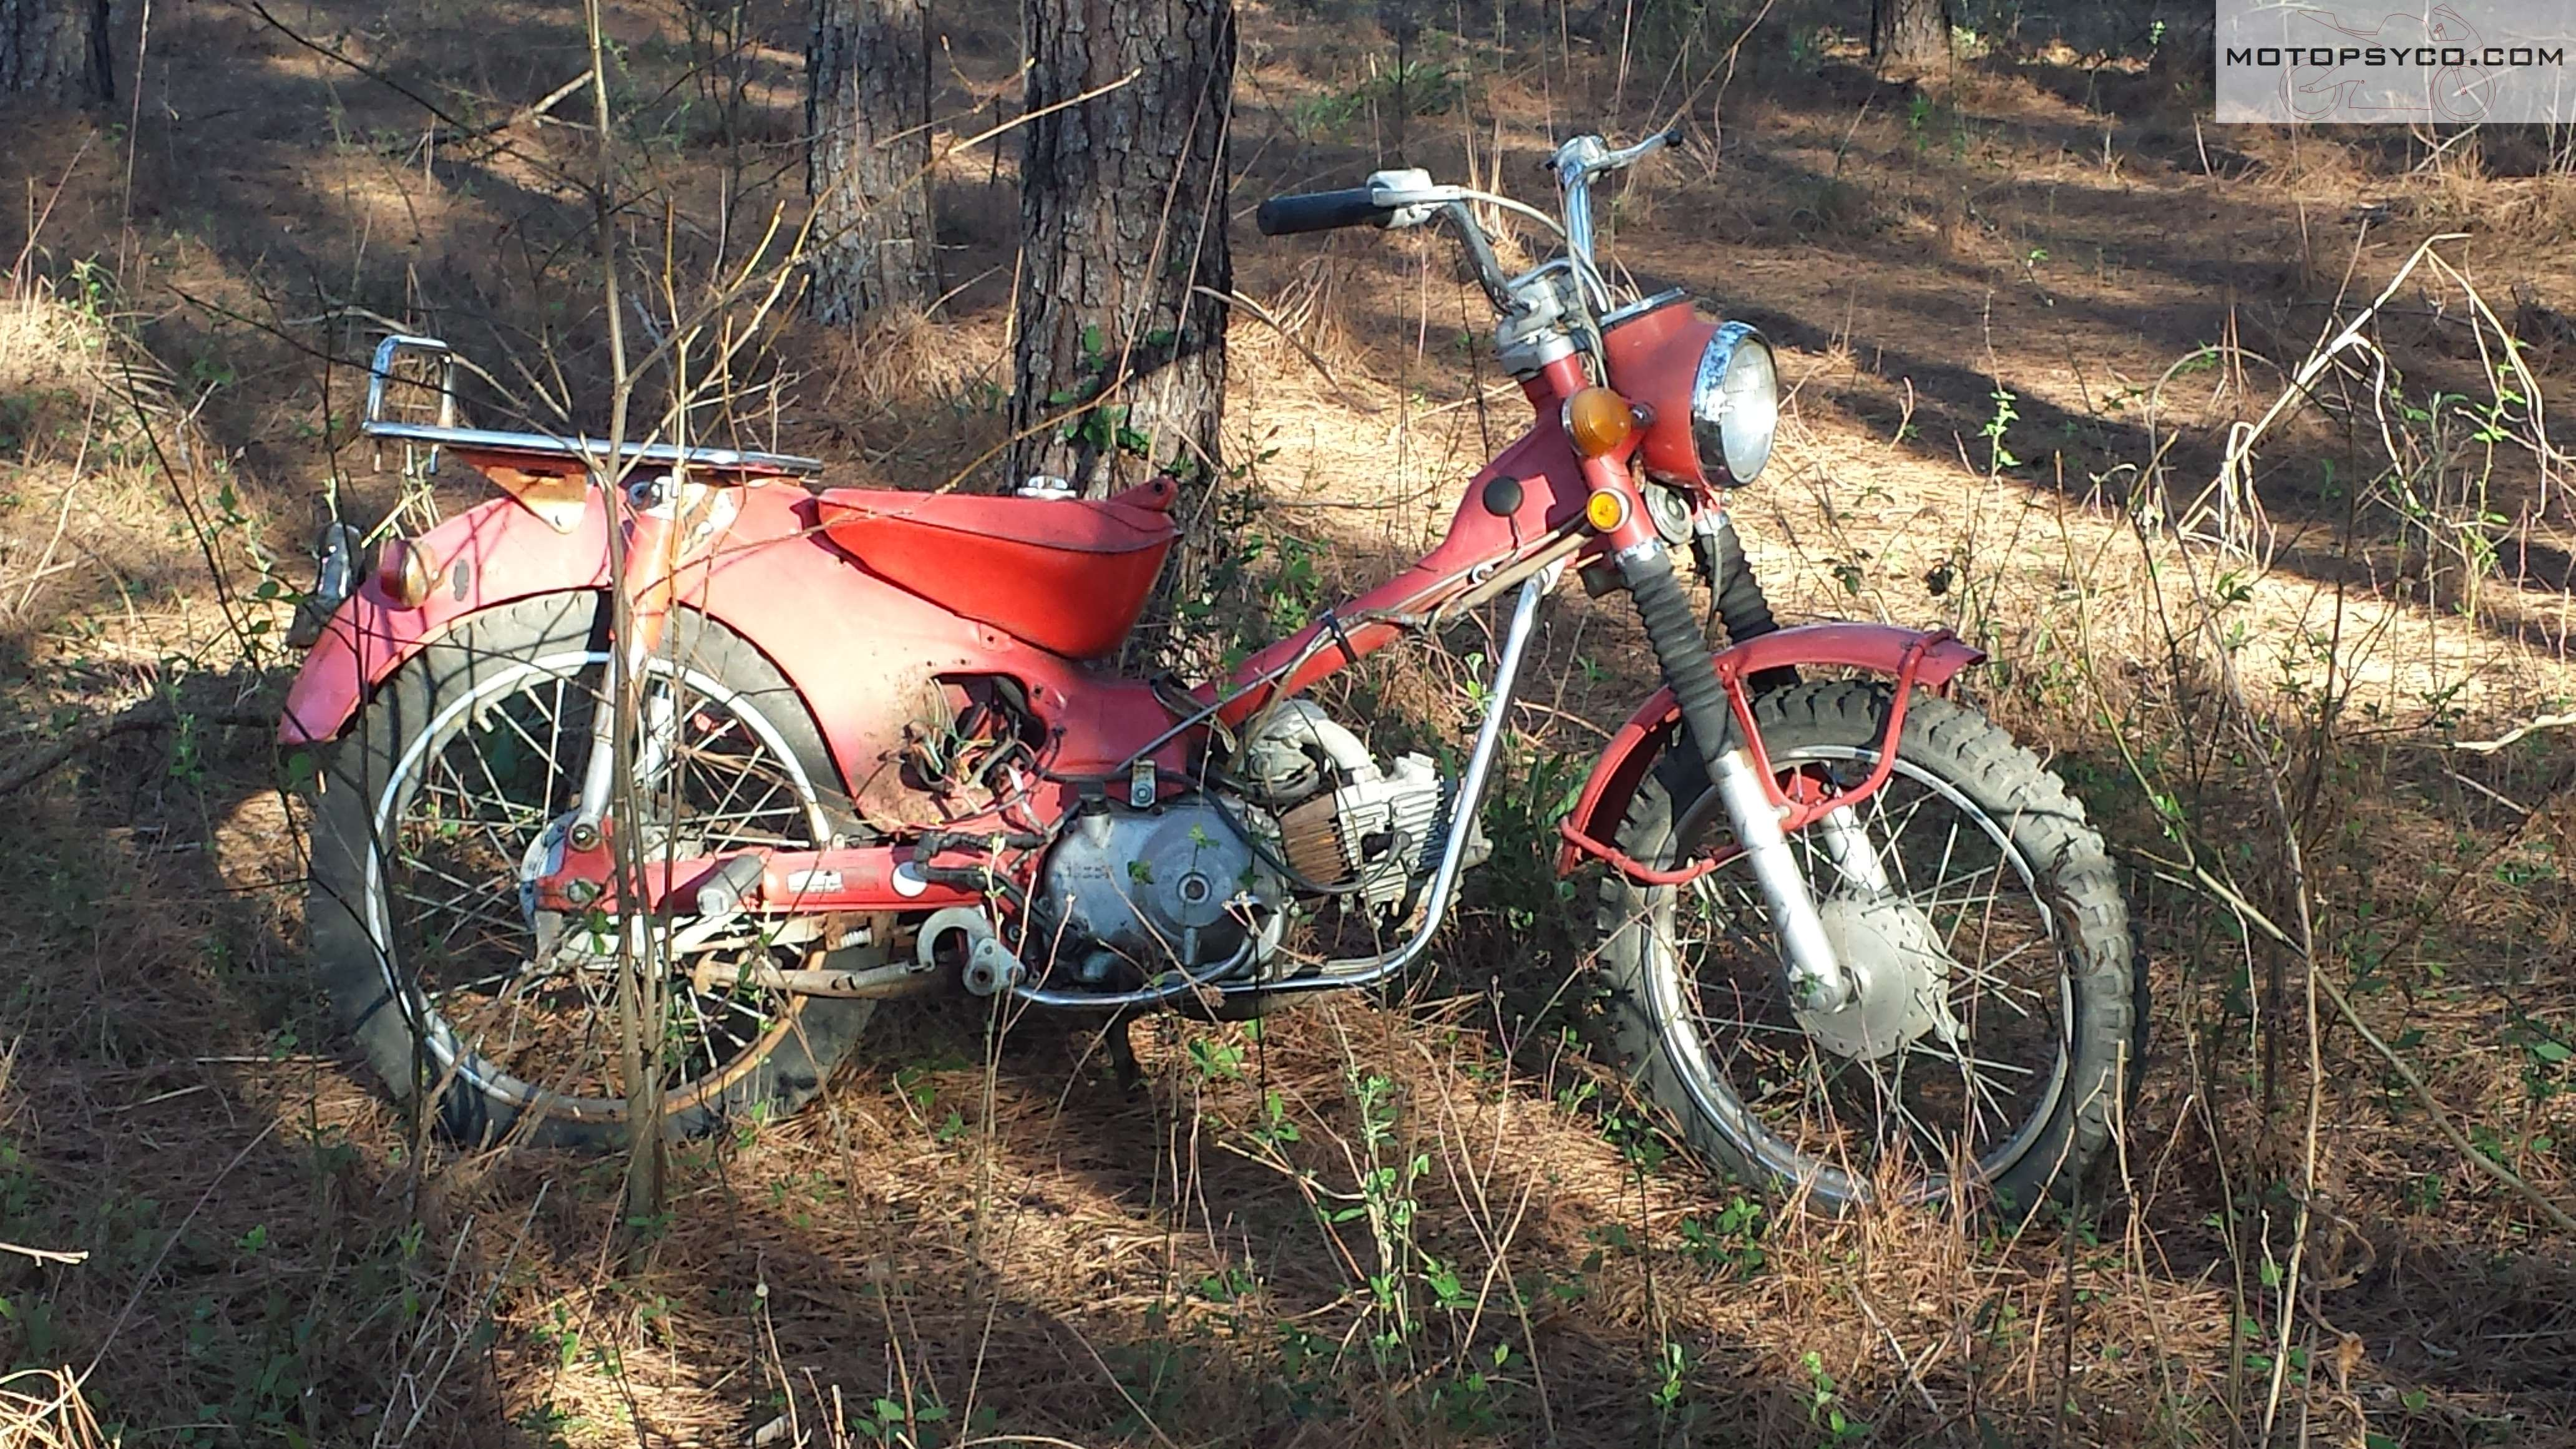 Ct90 Wiring Harness 1970 Honda Junkyard Dog Motopsycos Asylum Crazy About In The Woods